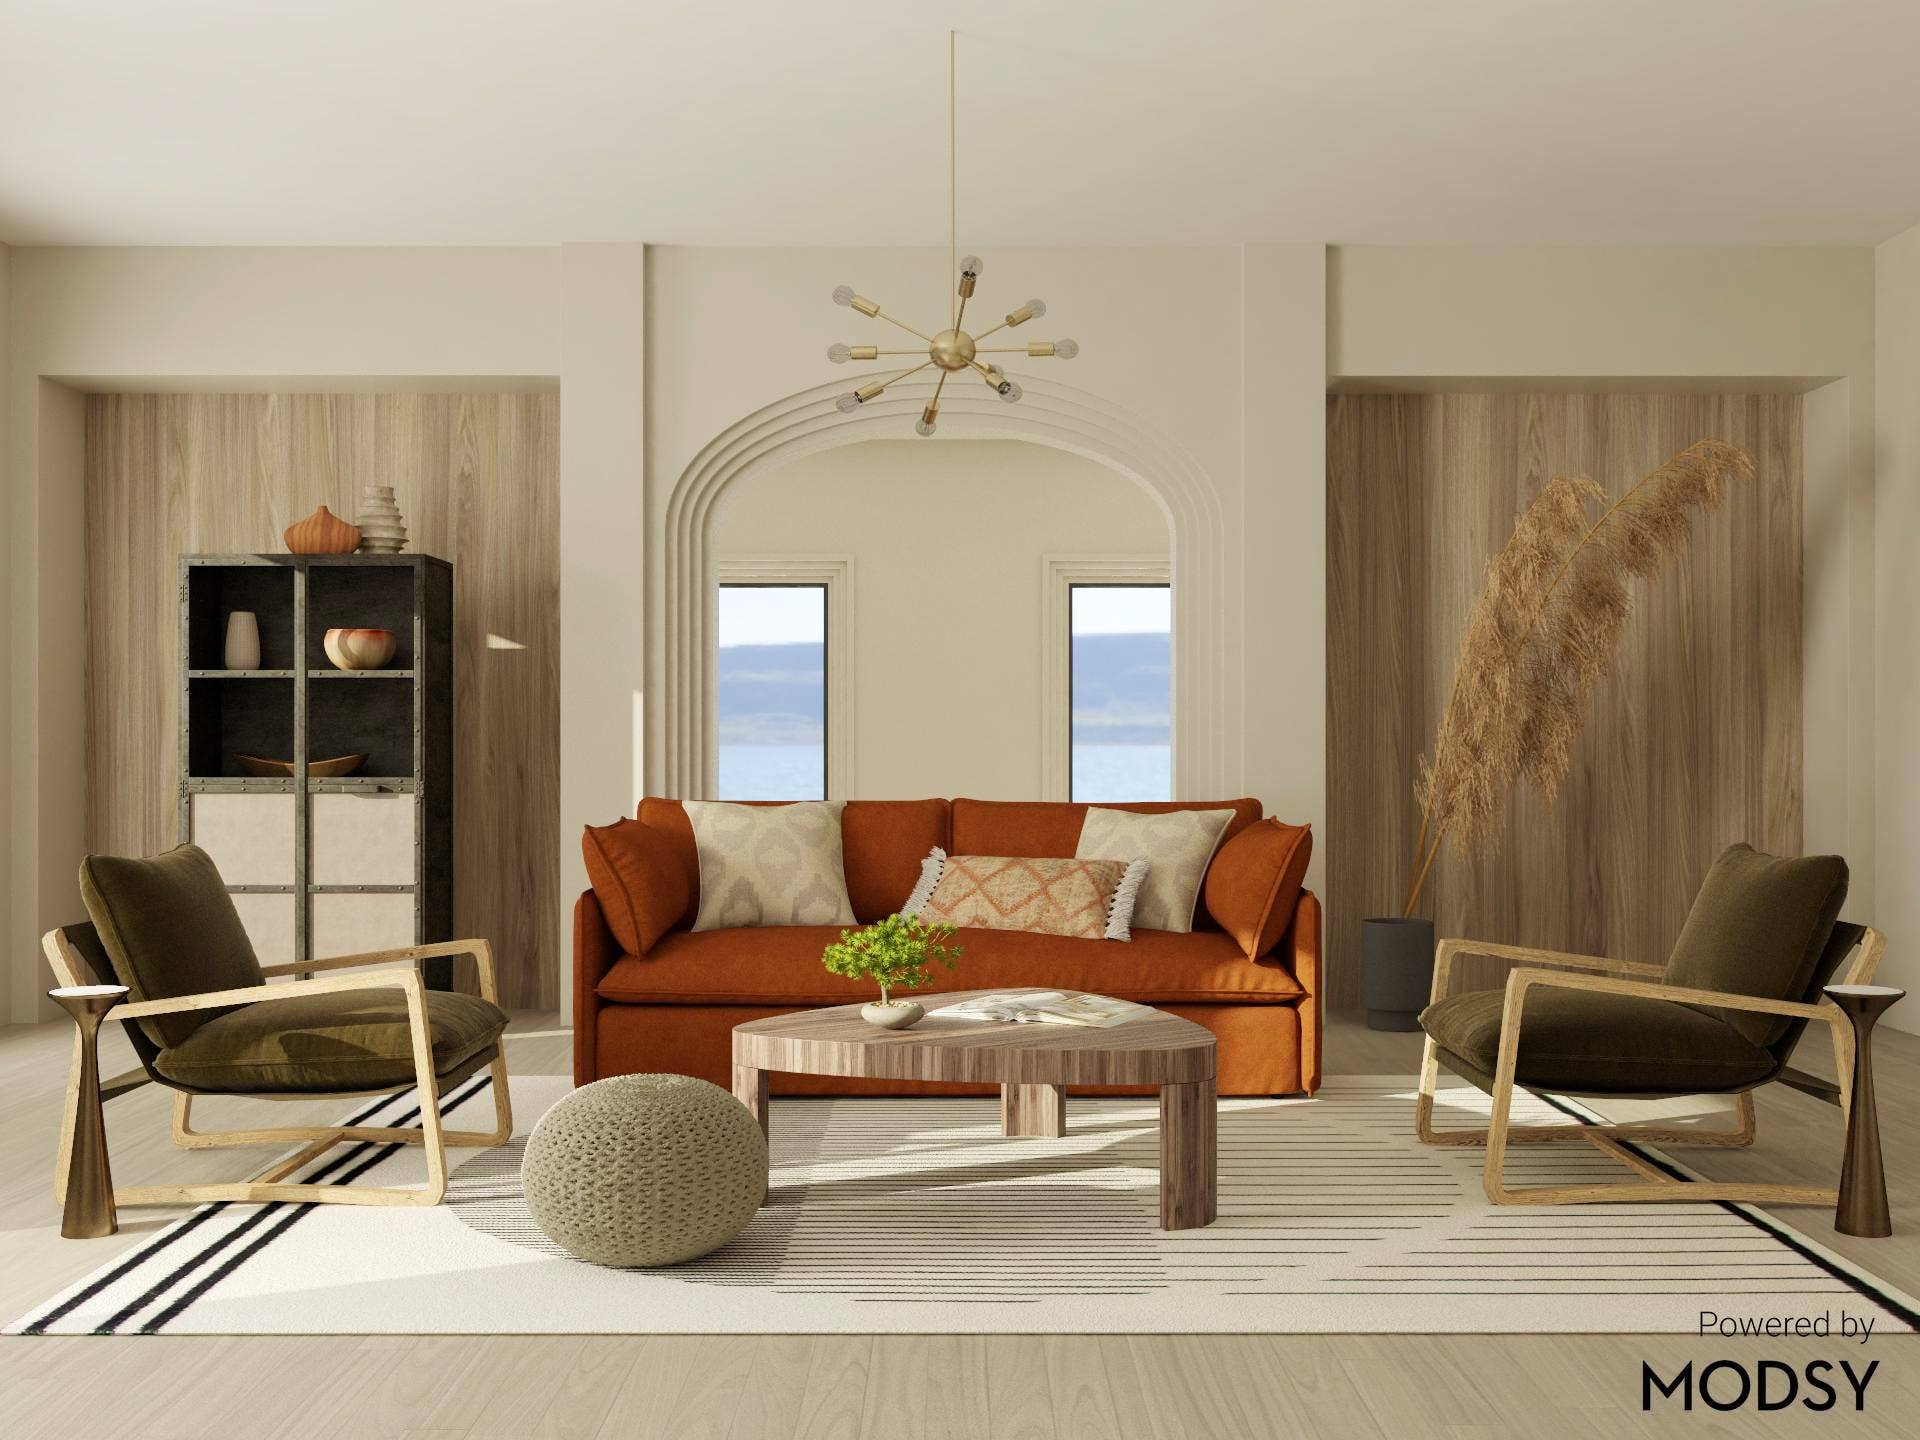 Rich Earth Tones in Contemporary Living Room